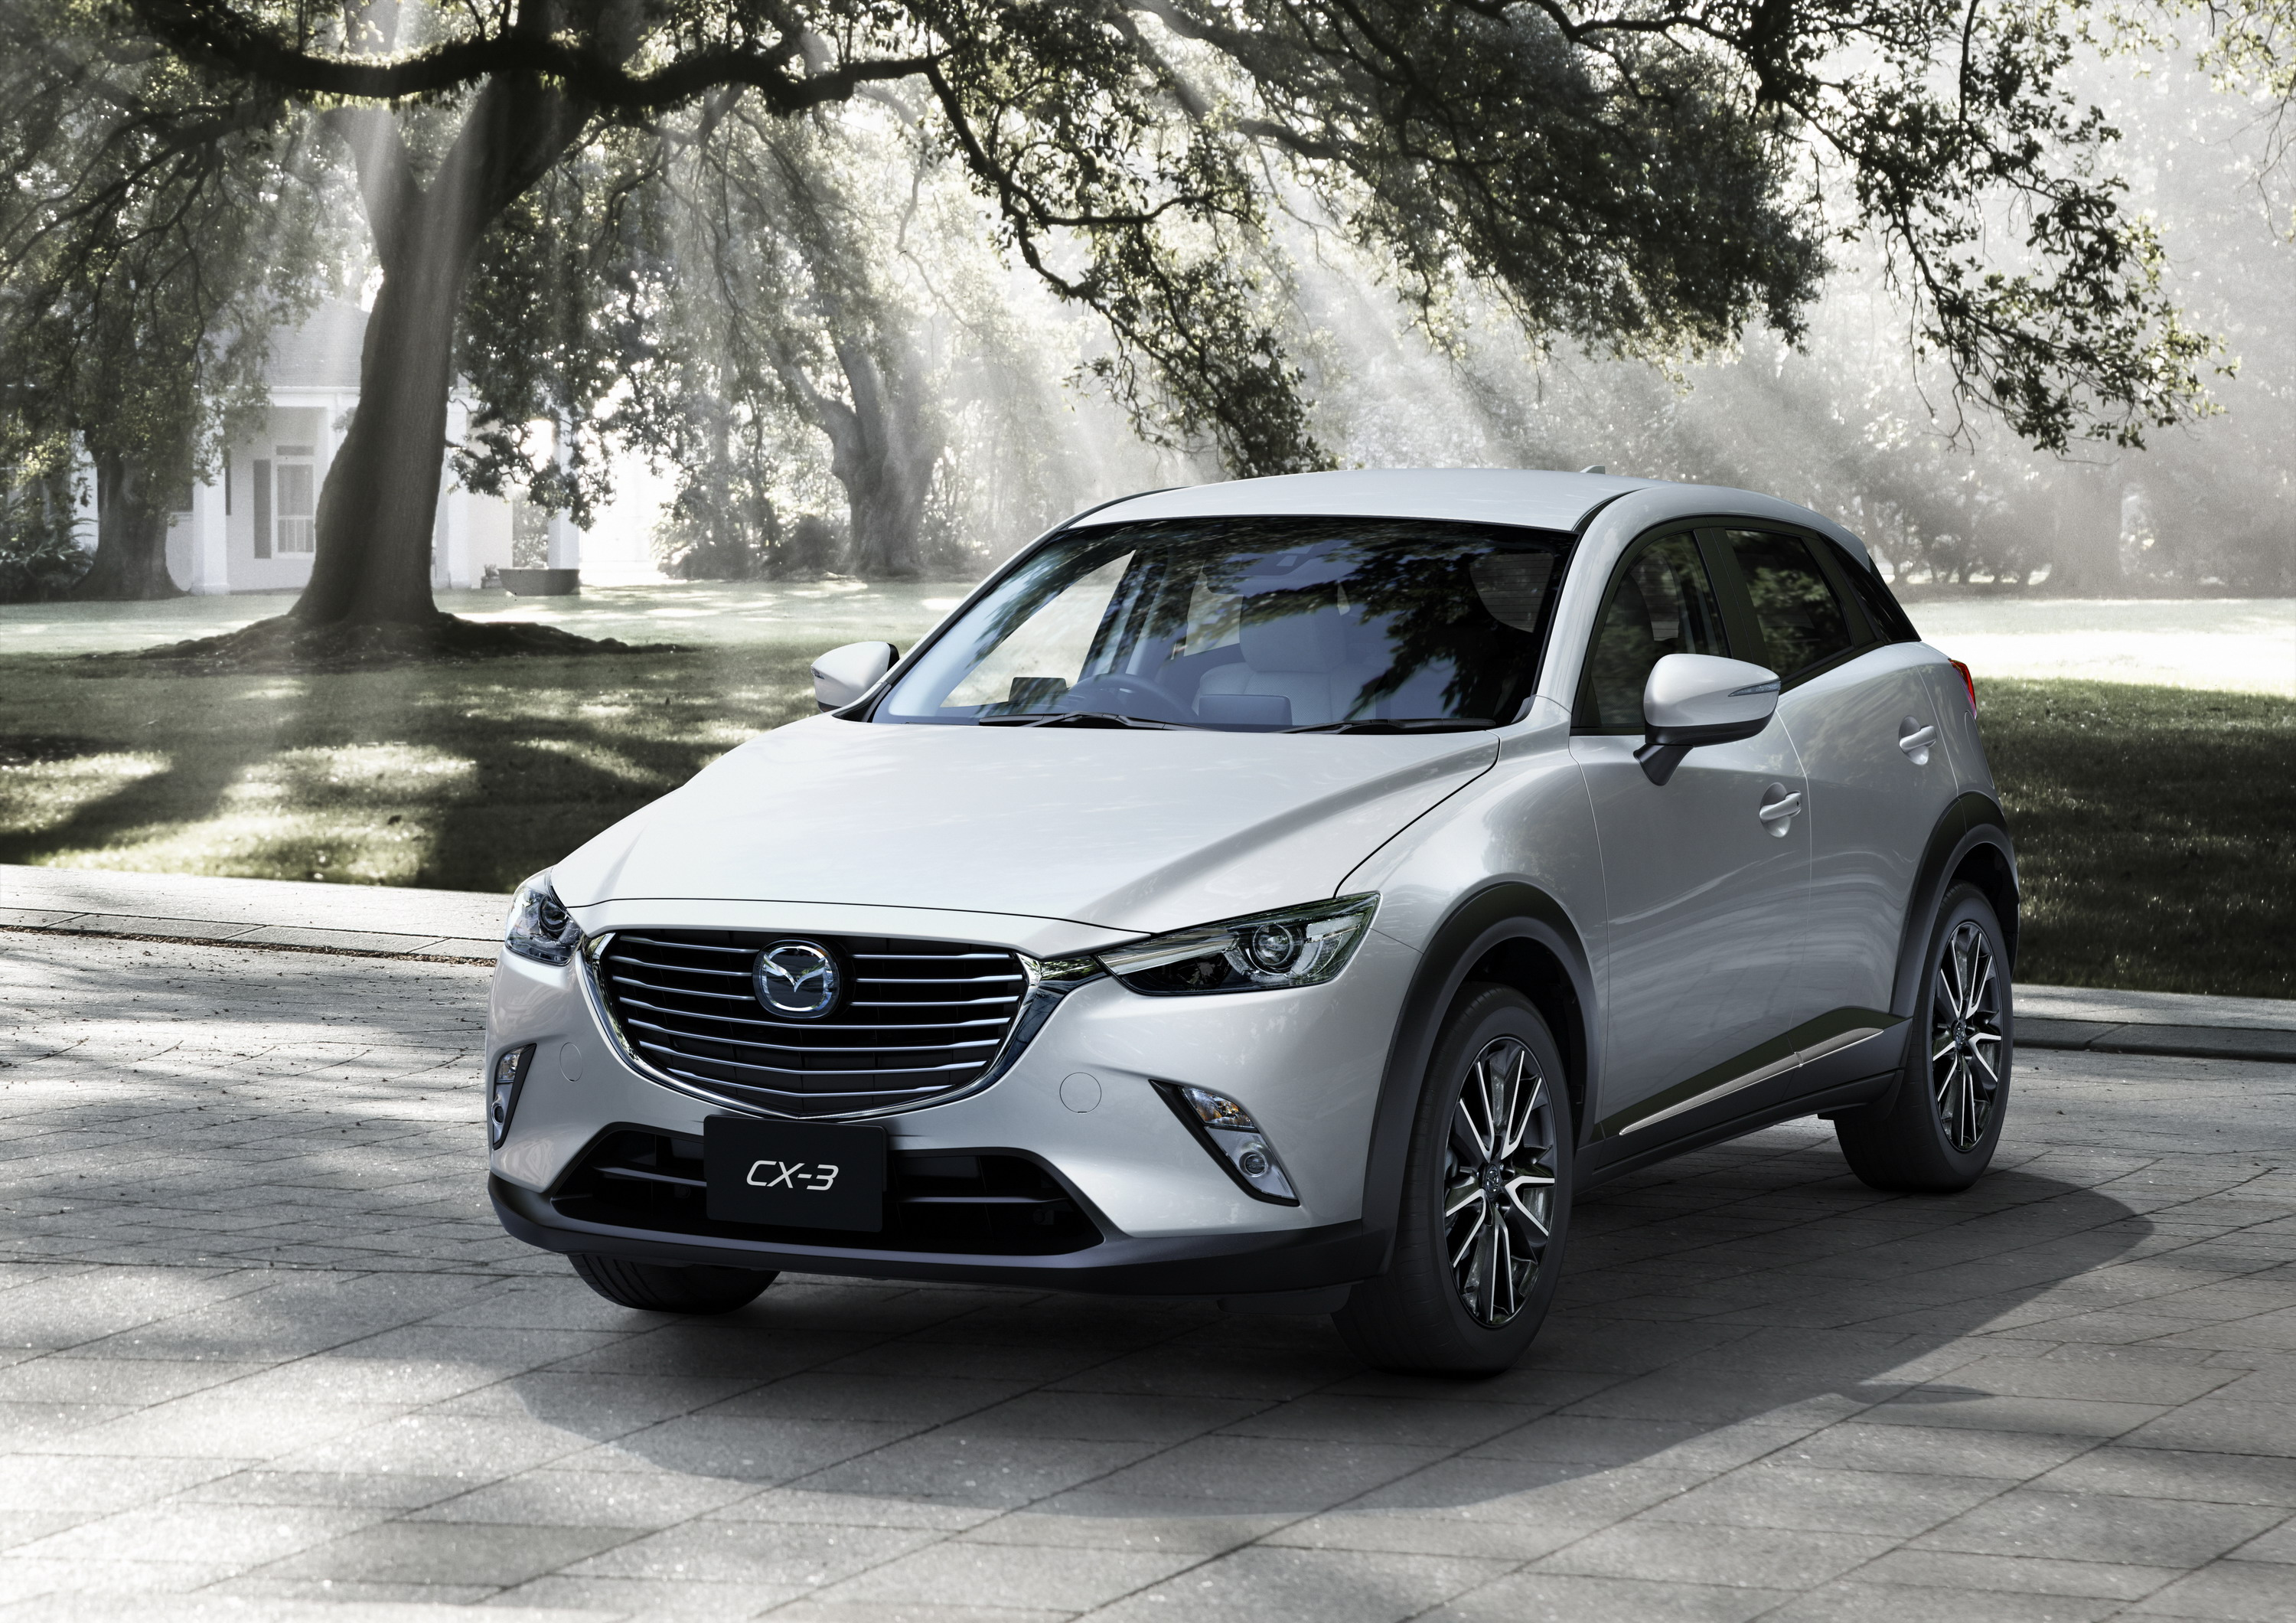 2016 2017 Mazda CX 3 Review Top Speed